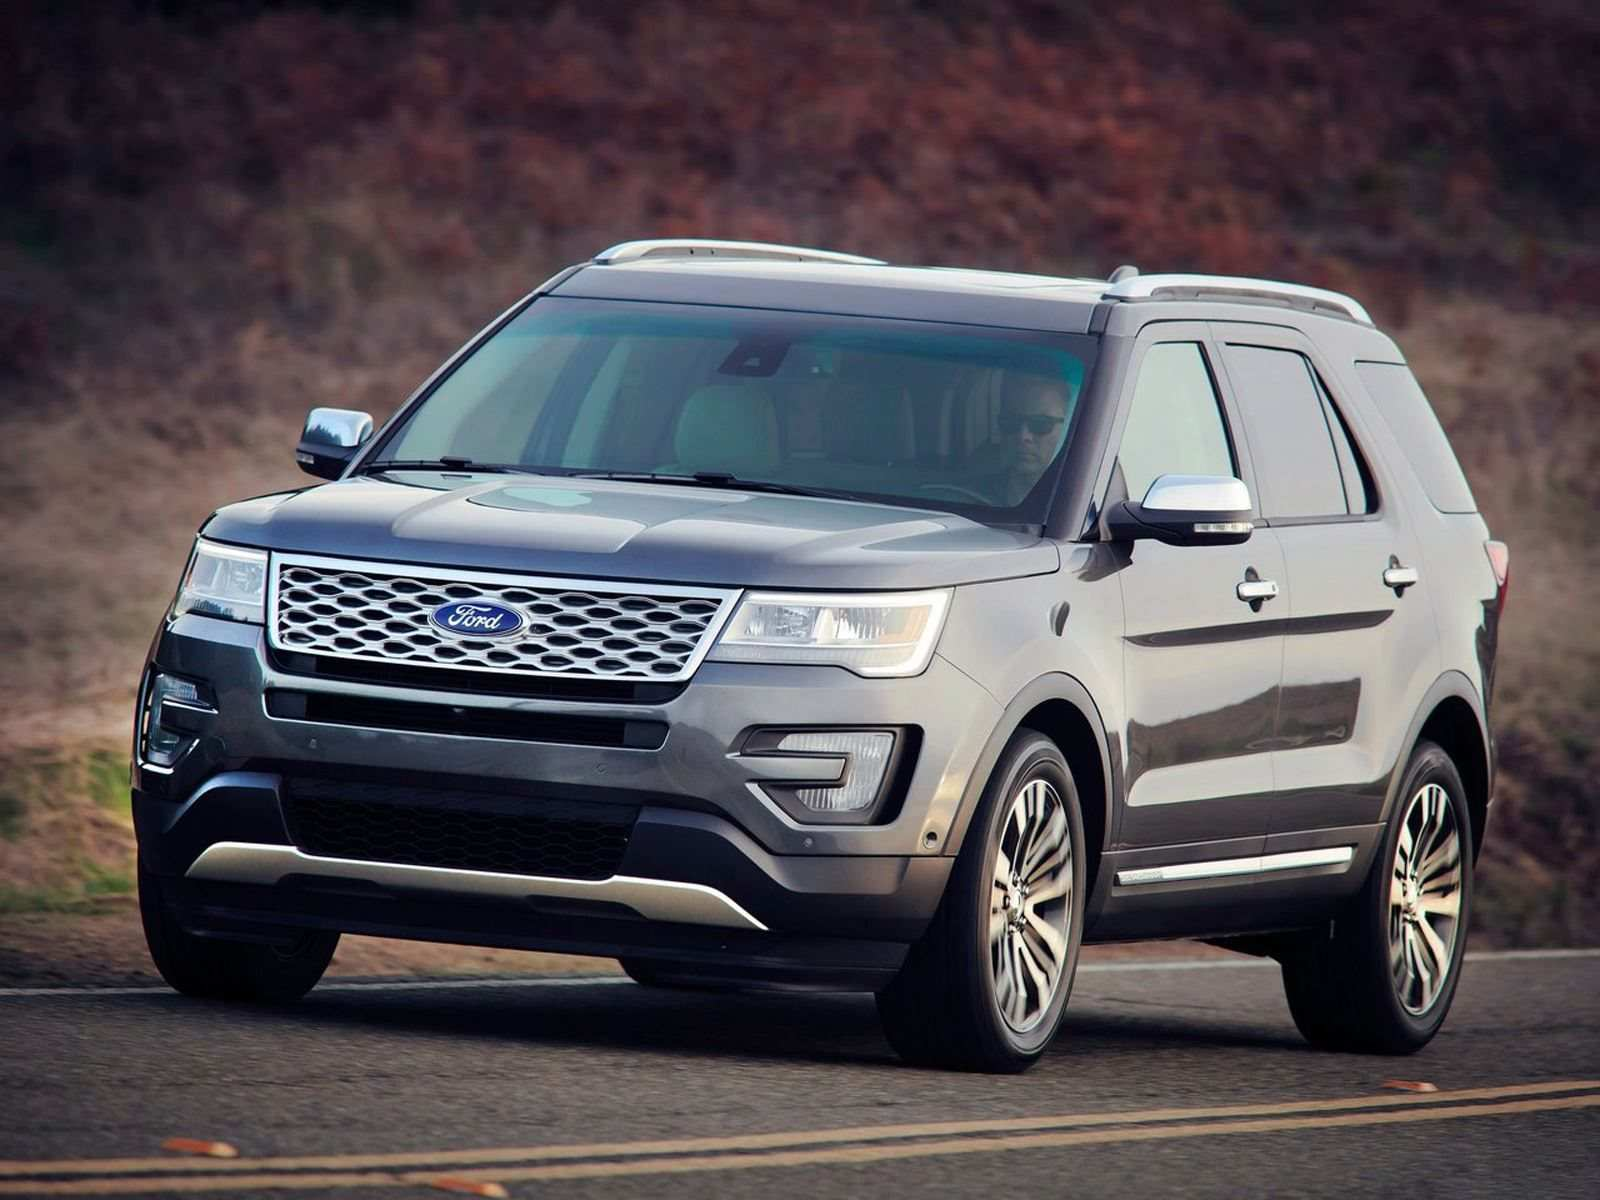 48 Best Review 2020 Ford Explorer Design New Review for 2020 Ford Explorer Design